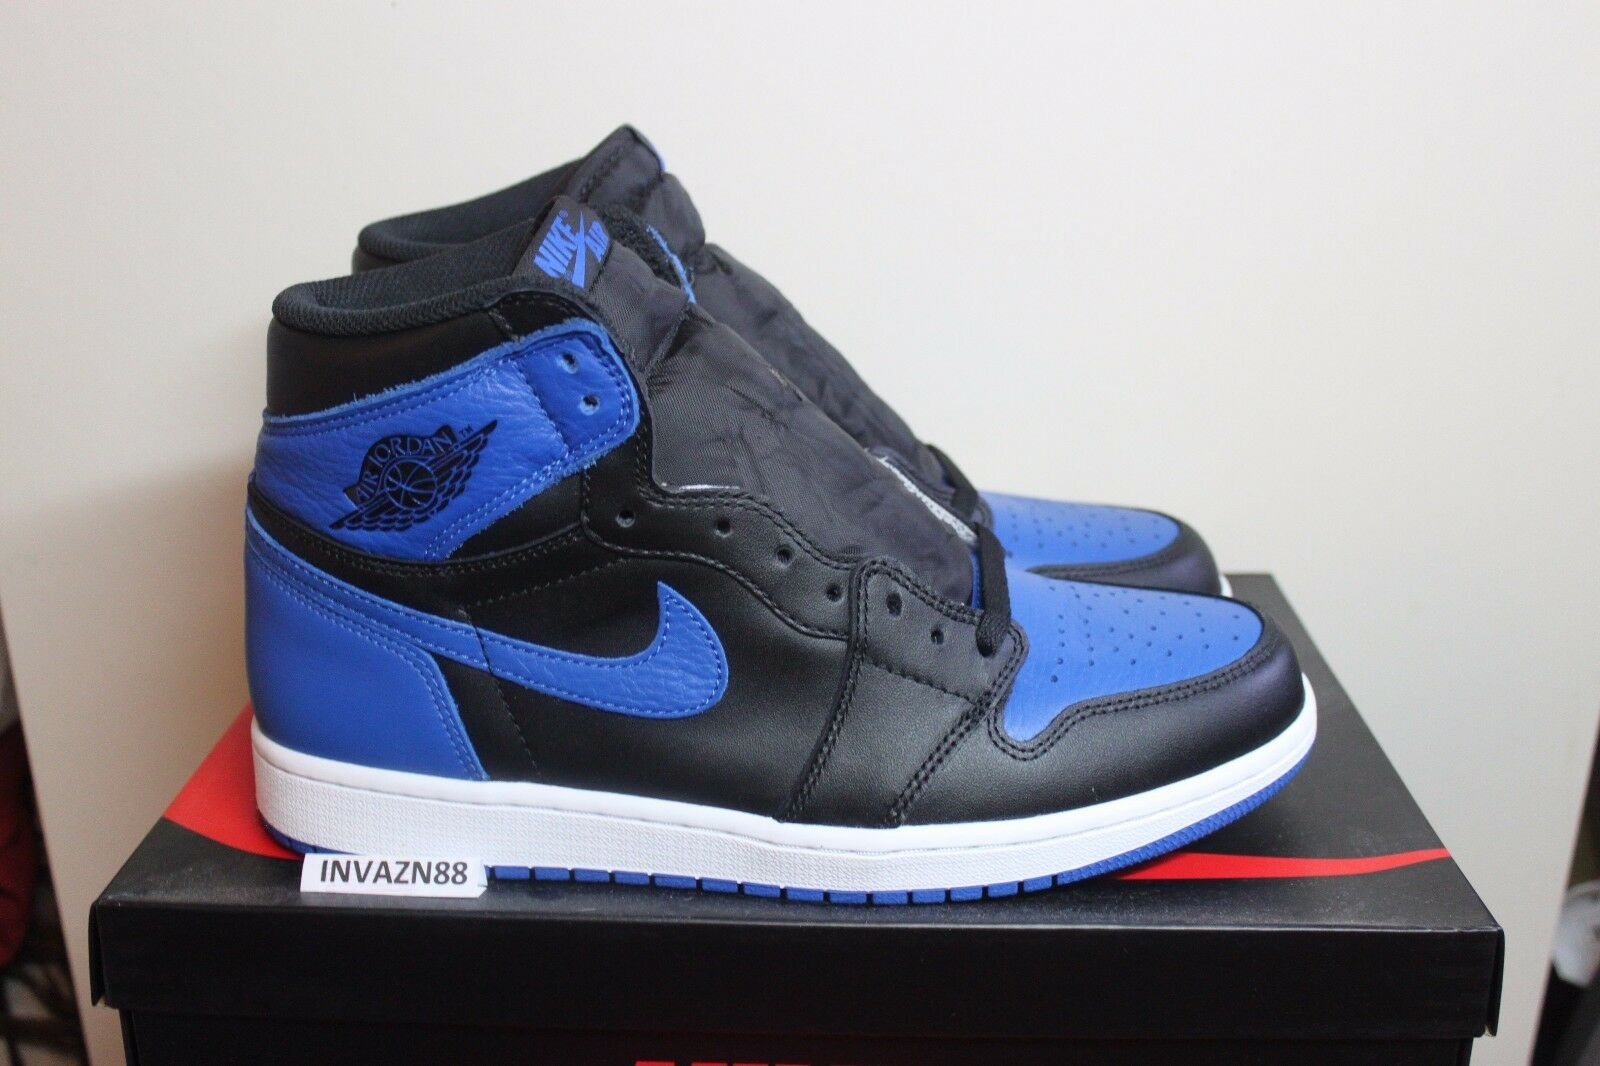 NIKE AIR RETRO JORDAN 1 HIGH OG ROYAL blueE BLACK WHITE 555088 007 1 SIZE 10-15